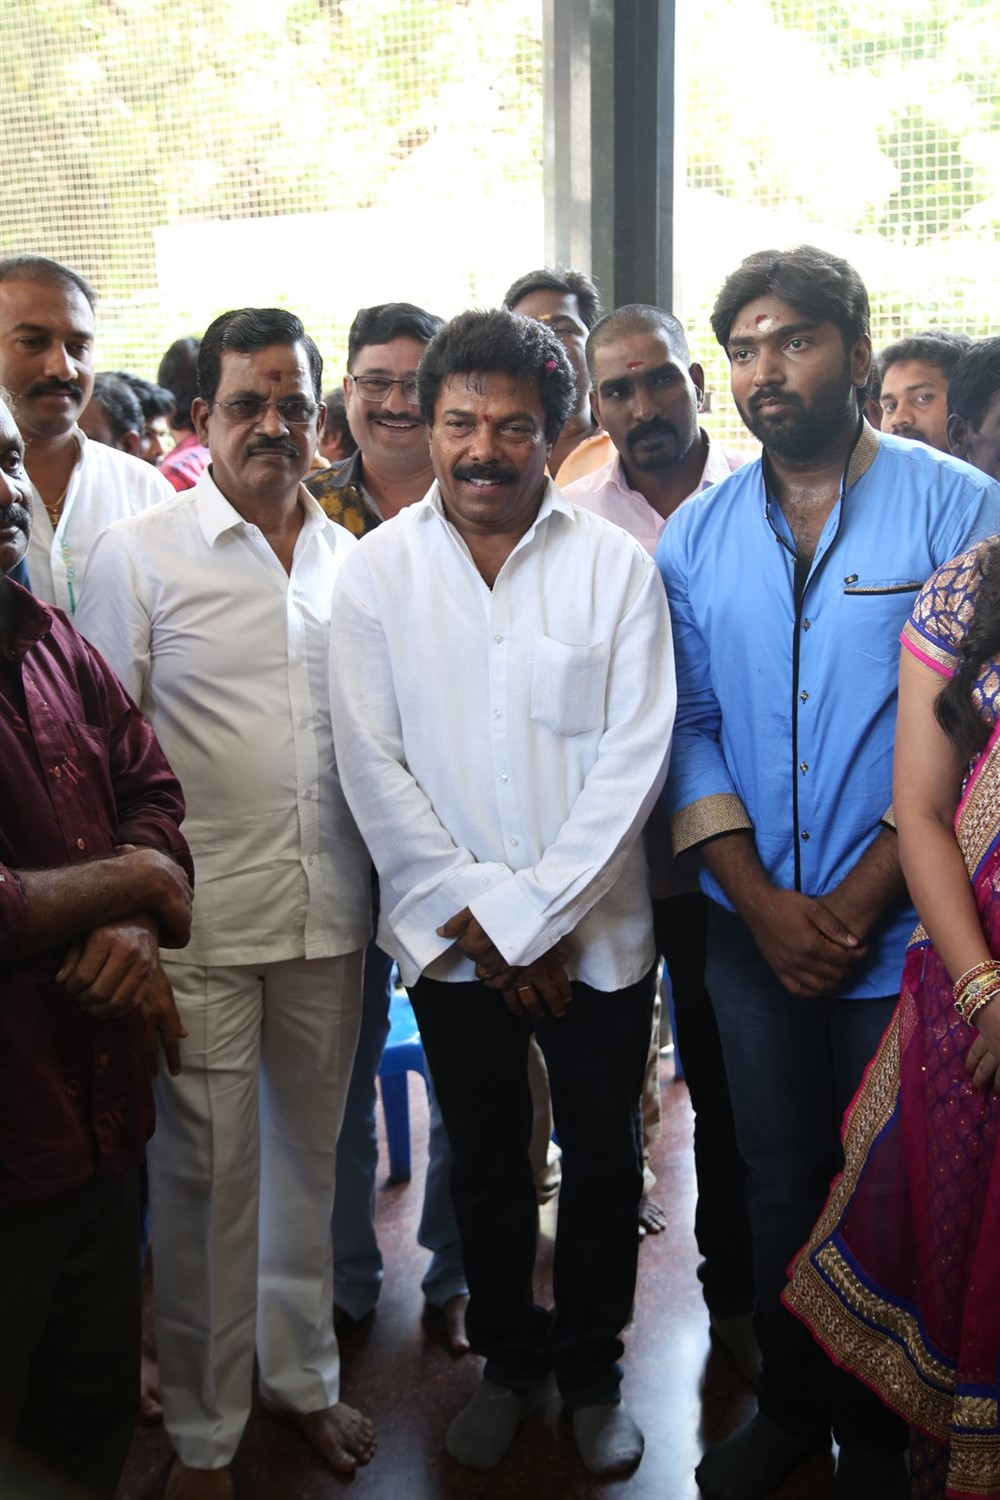 Kalaipuli S Thanu, Jaguar Thangam @ Mannar and Company Movie Pooja Stills